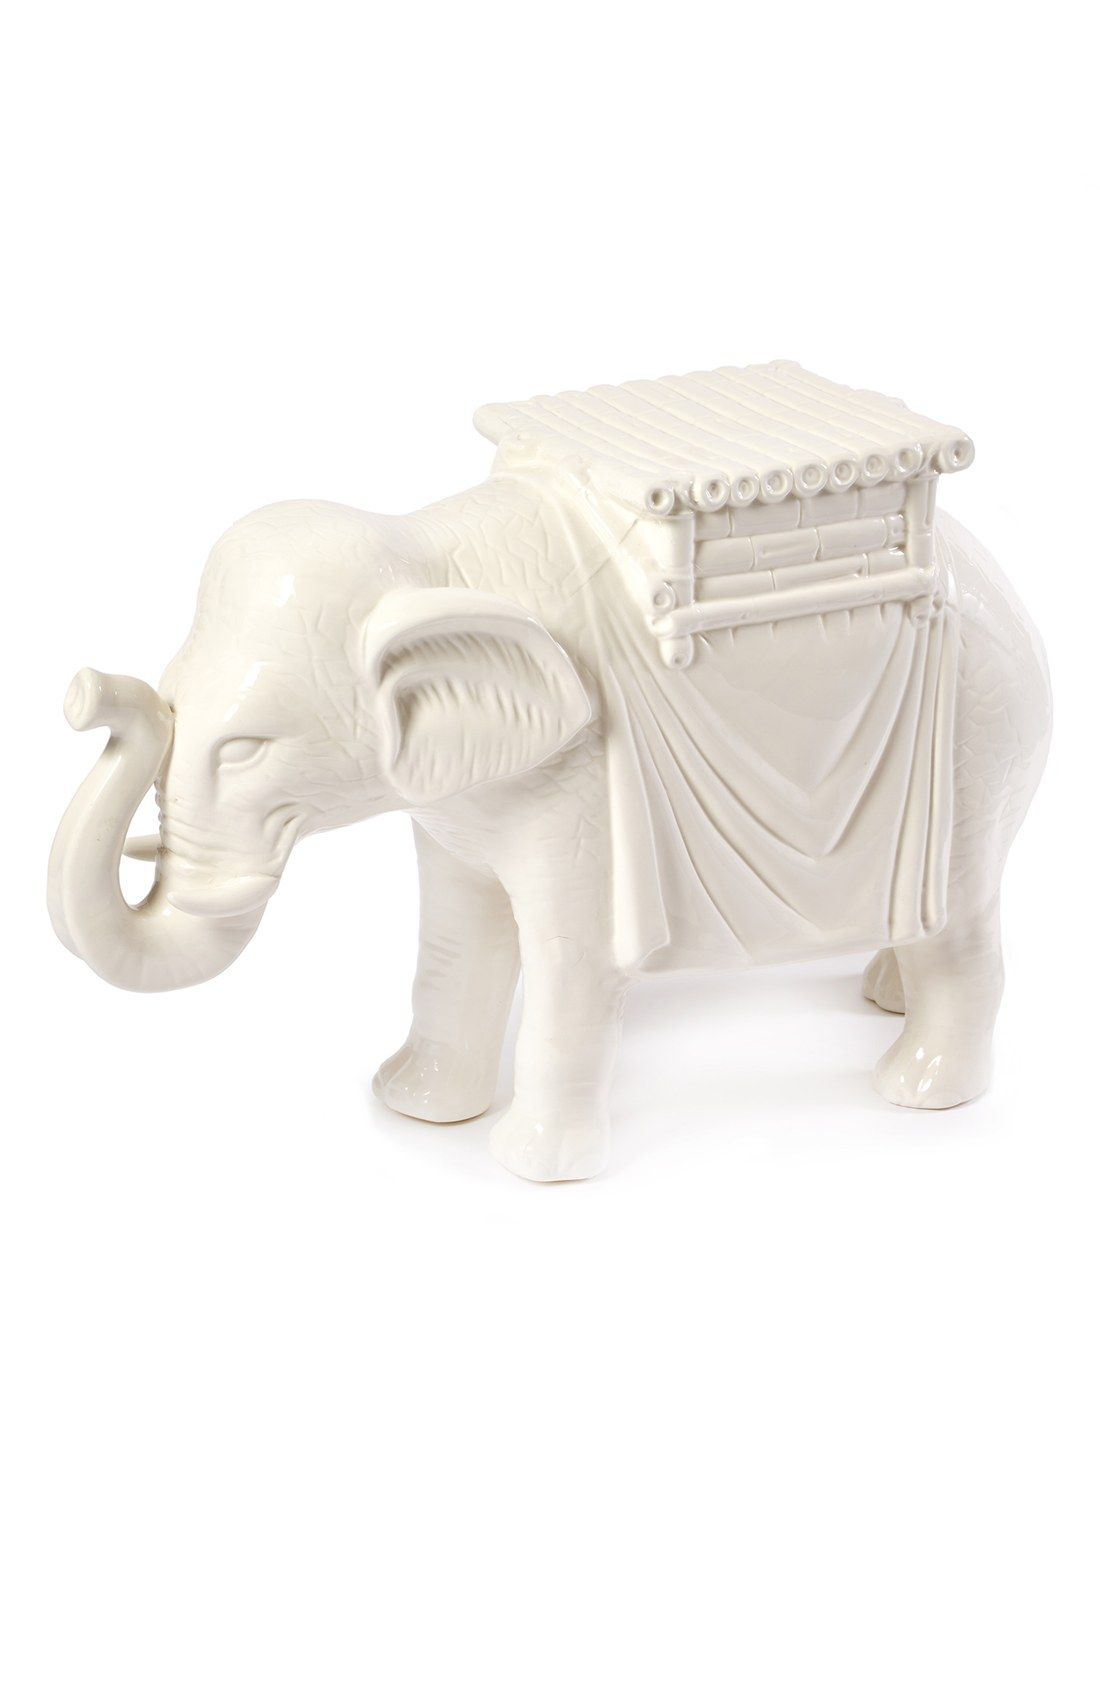 Free Shipping And Returns On Two S Company Ceramic Elephant